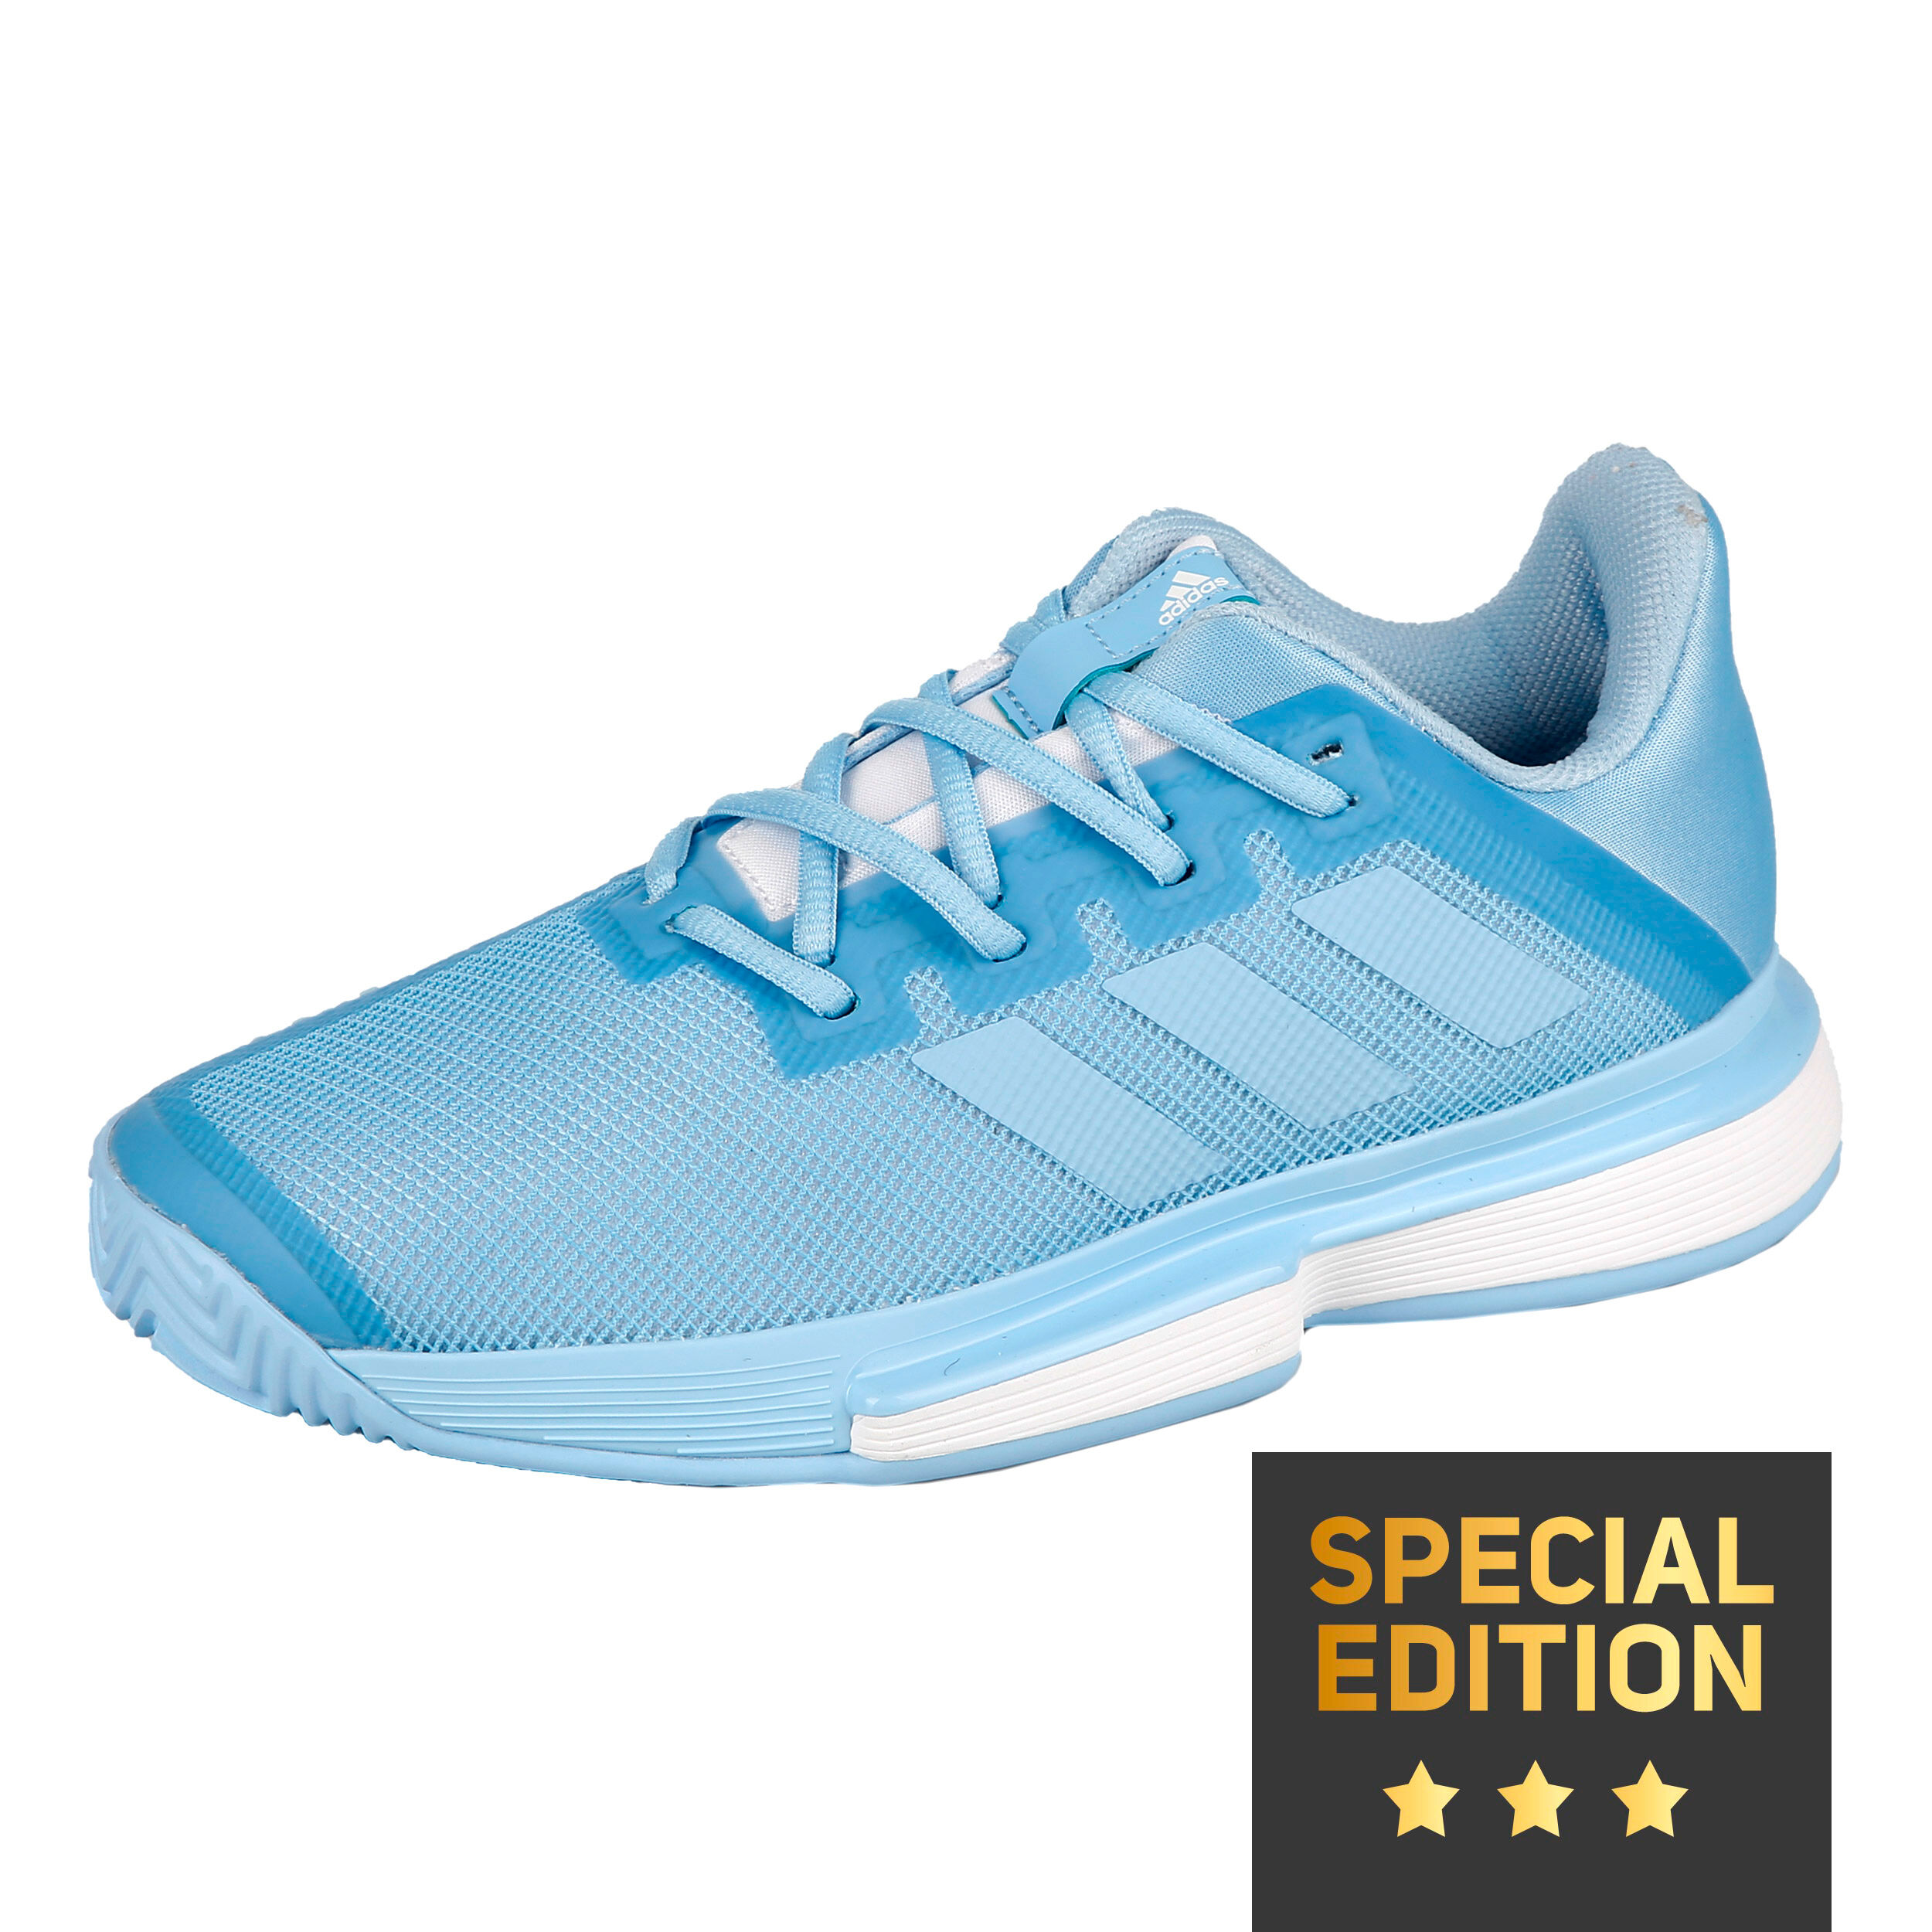 adidas Sole Match Bounce Clay Chaussure Terre Battue Special